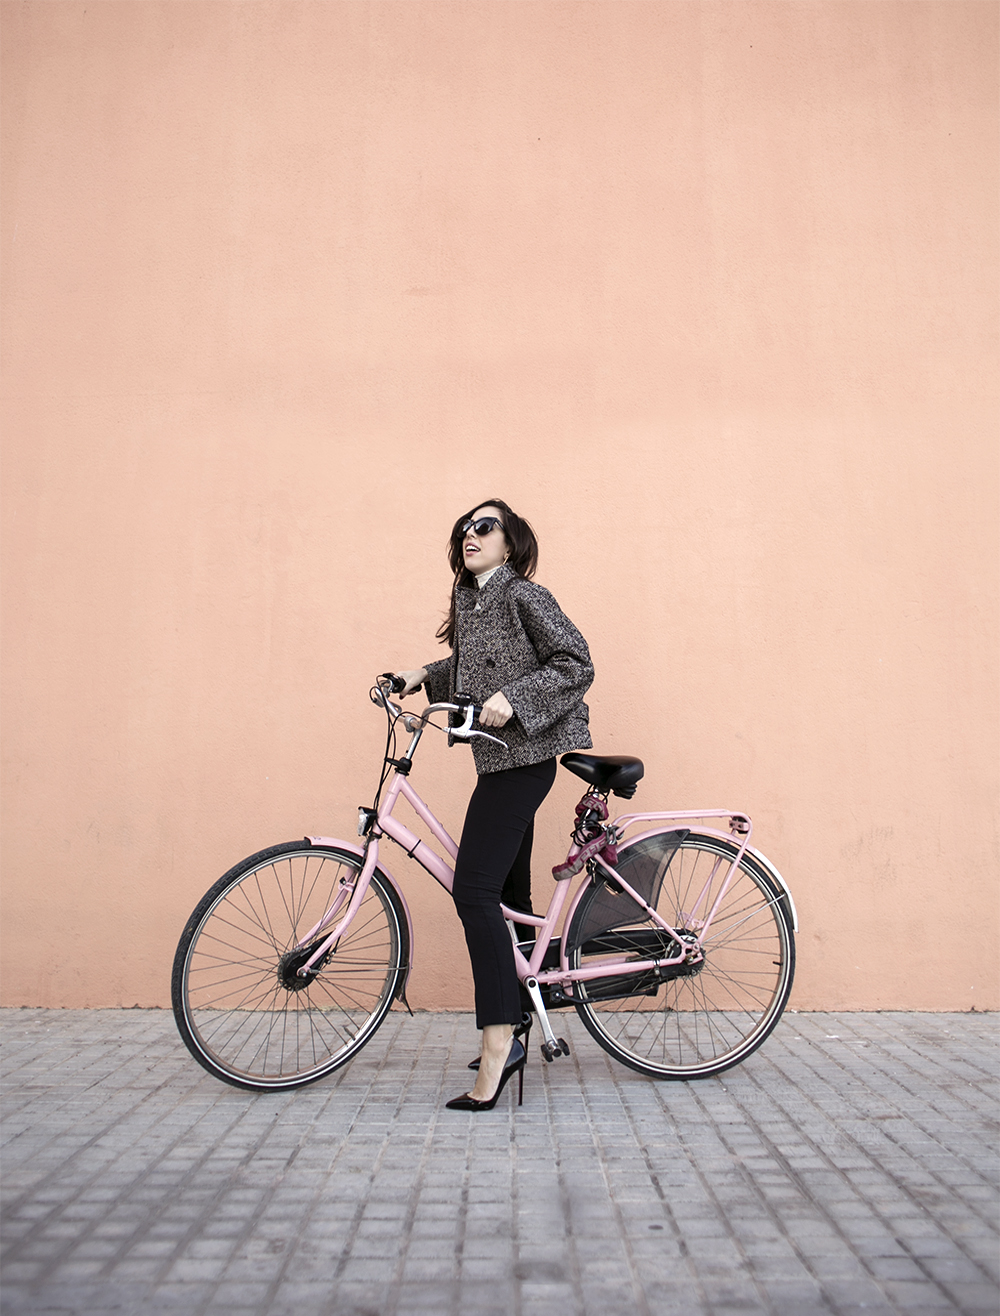 sania-claus-demina-rent-a-pink-bike-in-barcelona-hanna-stefansson-christian-louboutin-pigalle-120mm-gina-tricot-kick-flare-grey-coat-jacket_1c